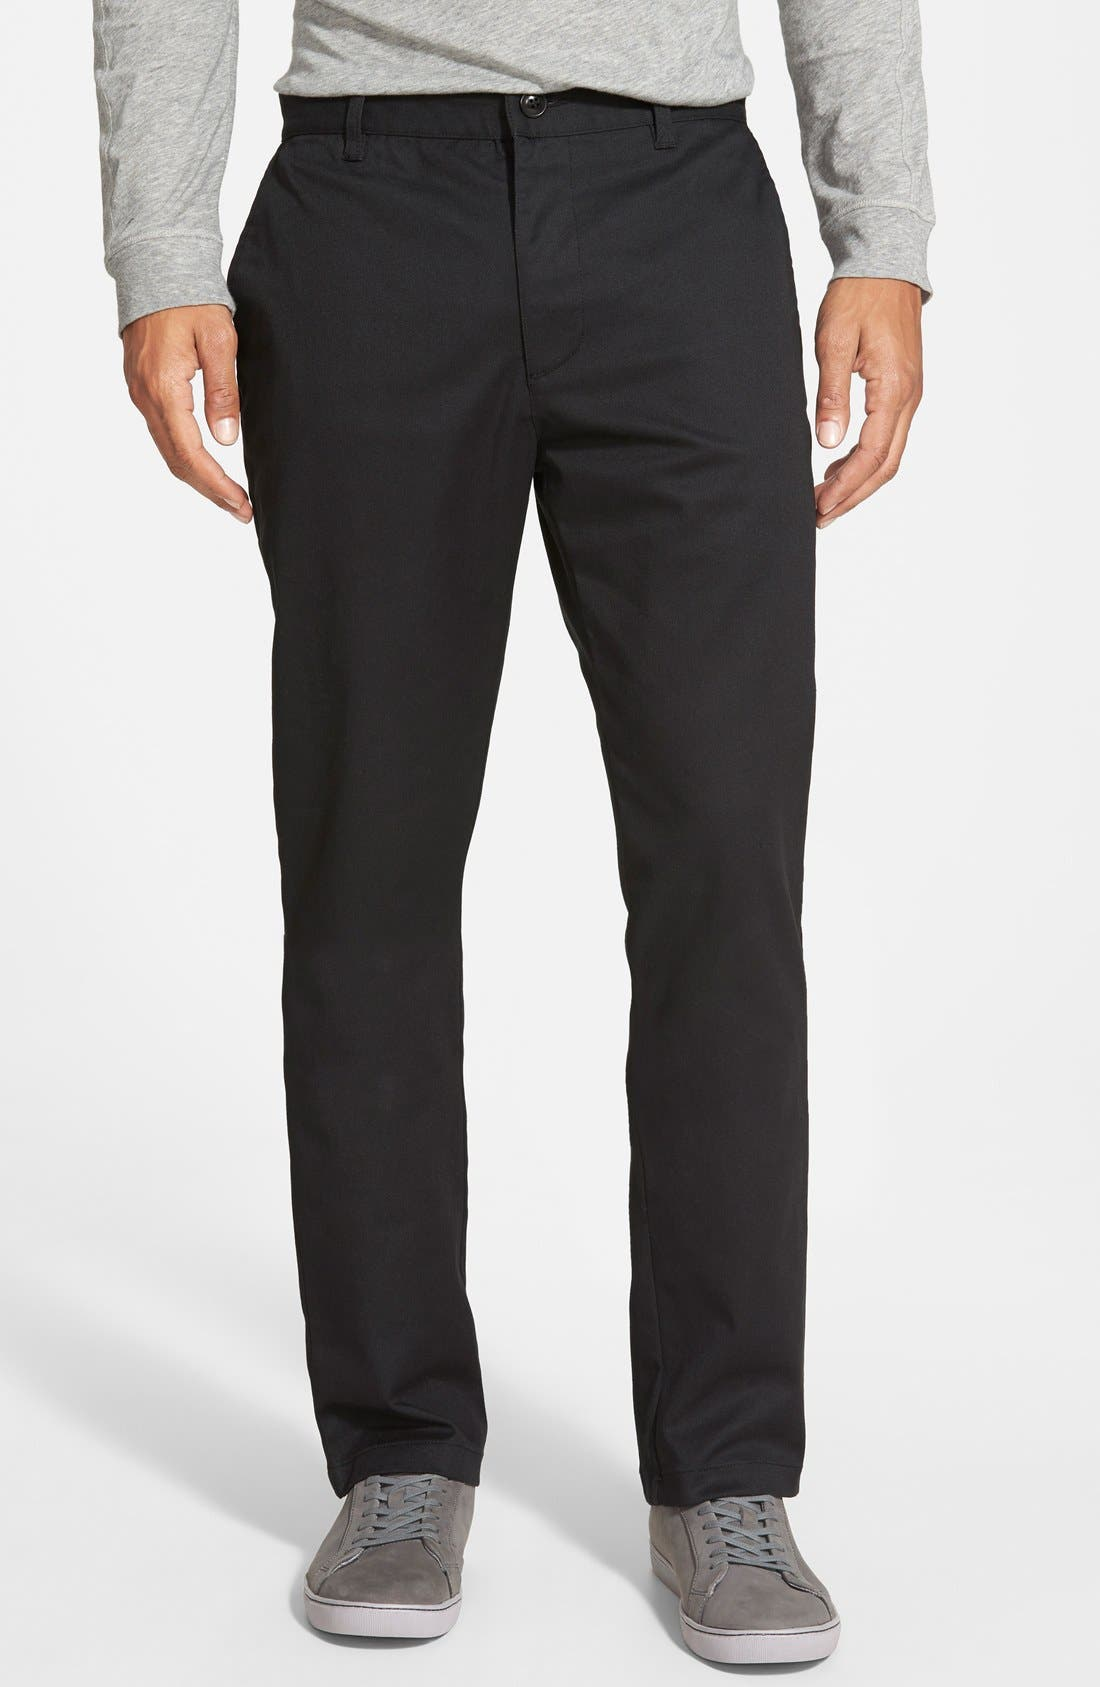 'The Week-End' Slim Straight Leg Stretch Twill Chinos,                             Main thumbnail 1, color,                             Black